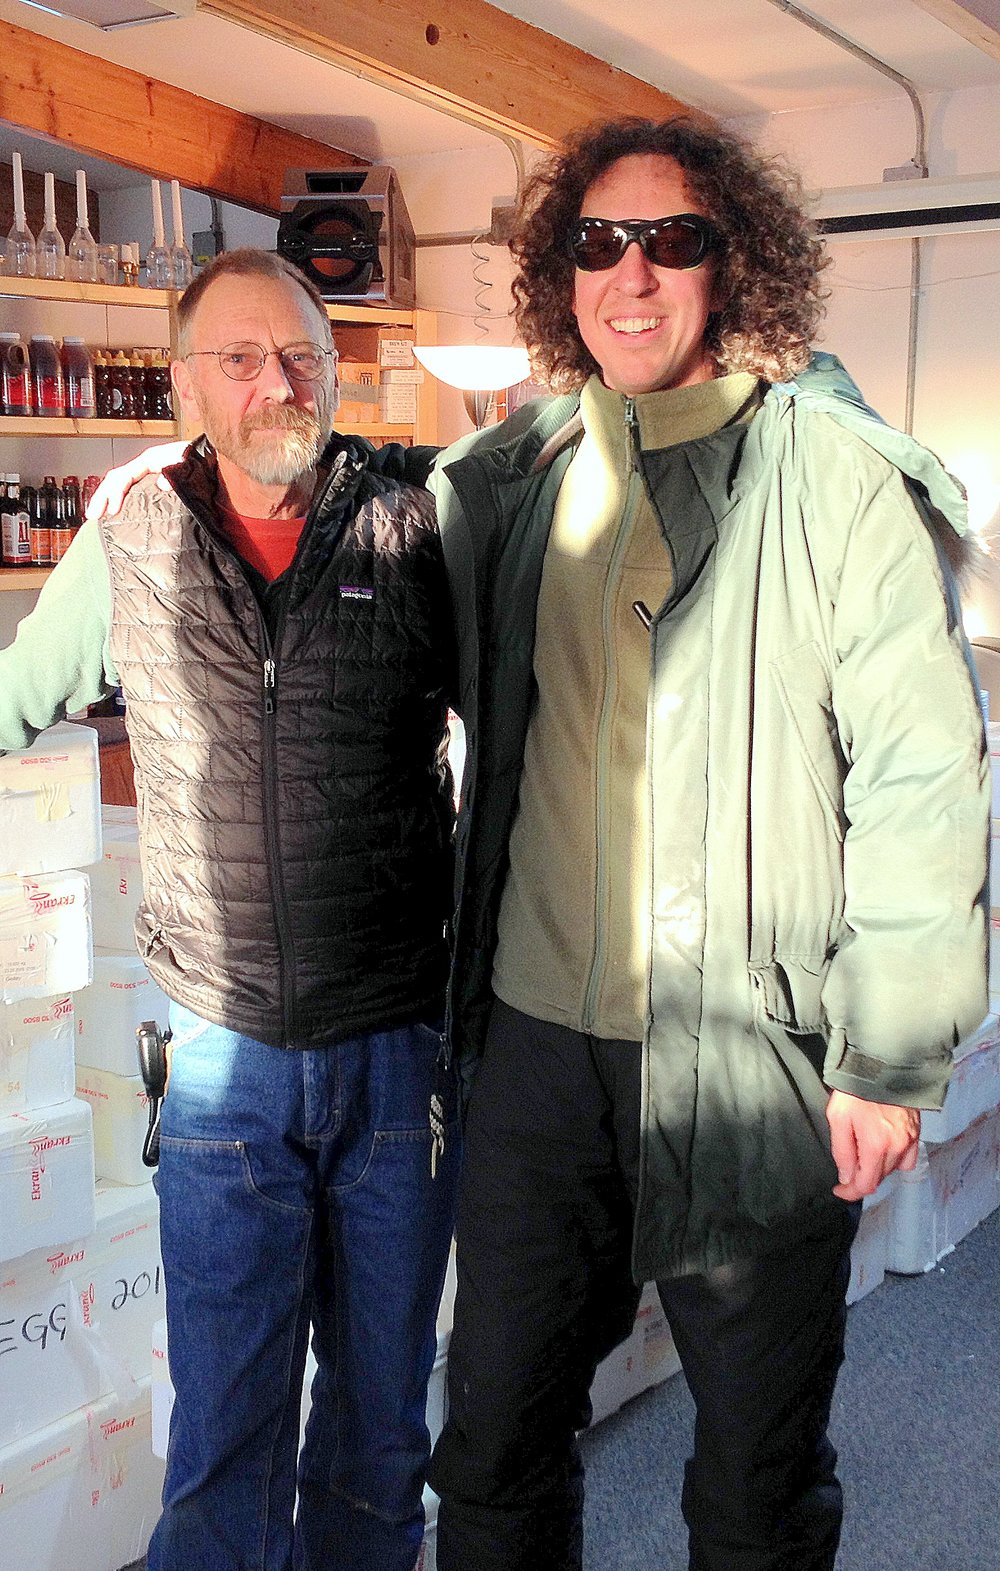 Phil Austin (left) takes the reigns at Summit Station from outgoing manager Brad Whelchel. One of the first tasks for the new five-member staff: unpack and store the freshies that arrived with on the Twin Otter that carried off the departing staff. Photo: Tracy Sheeley